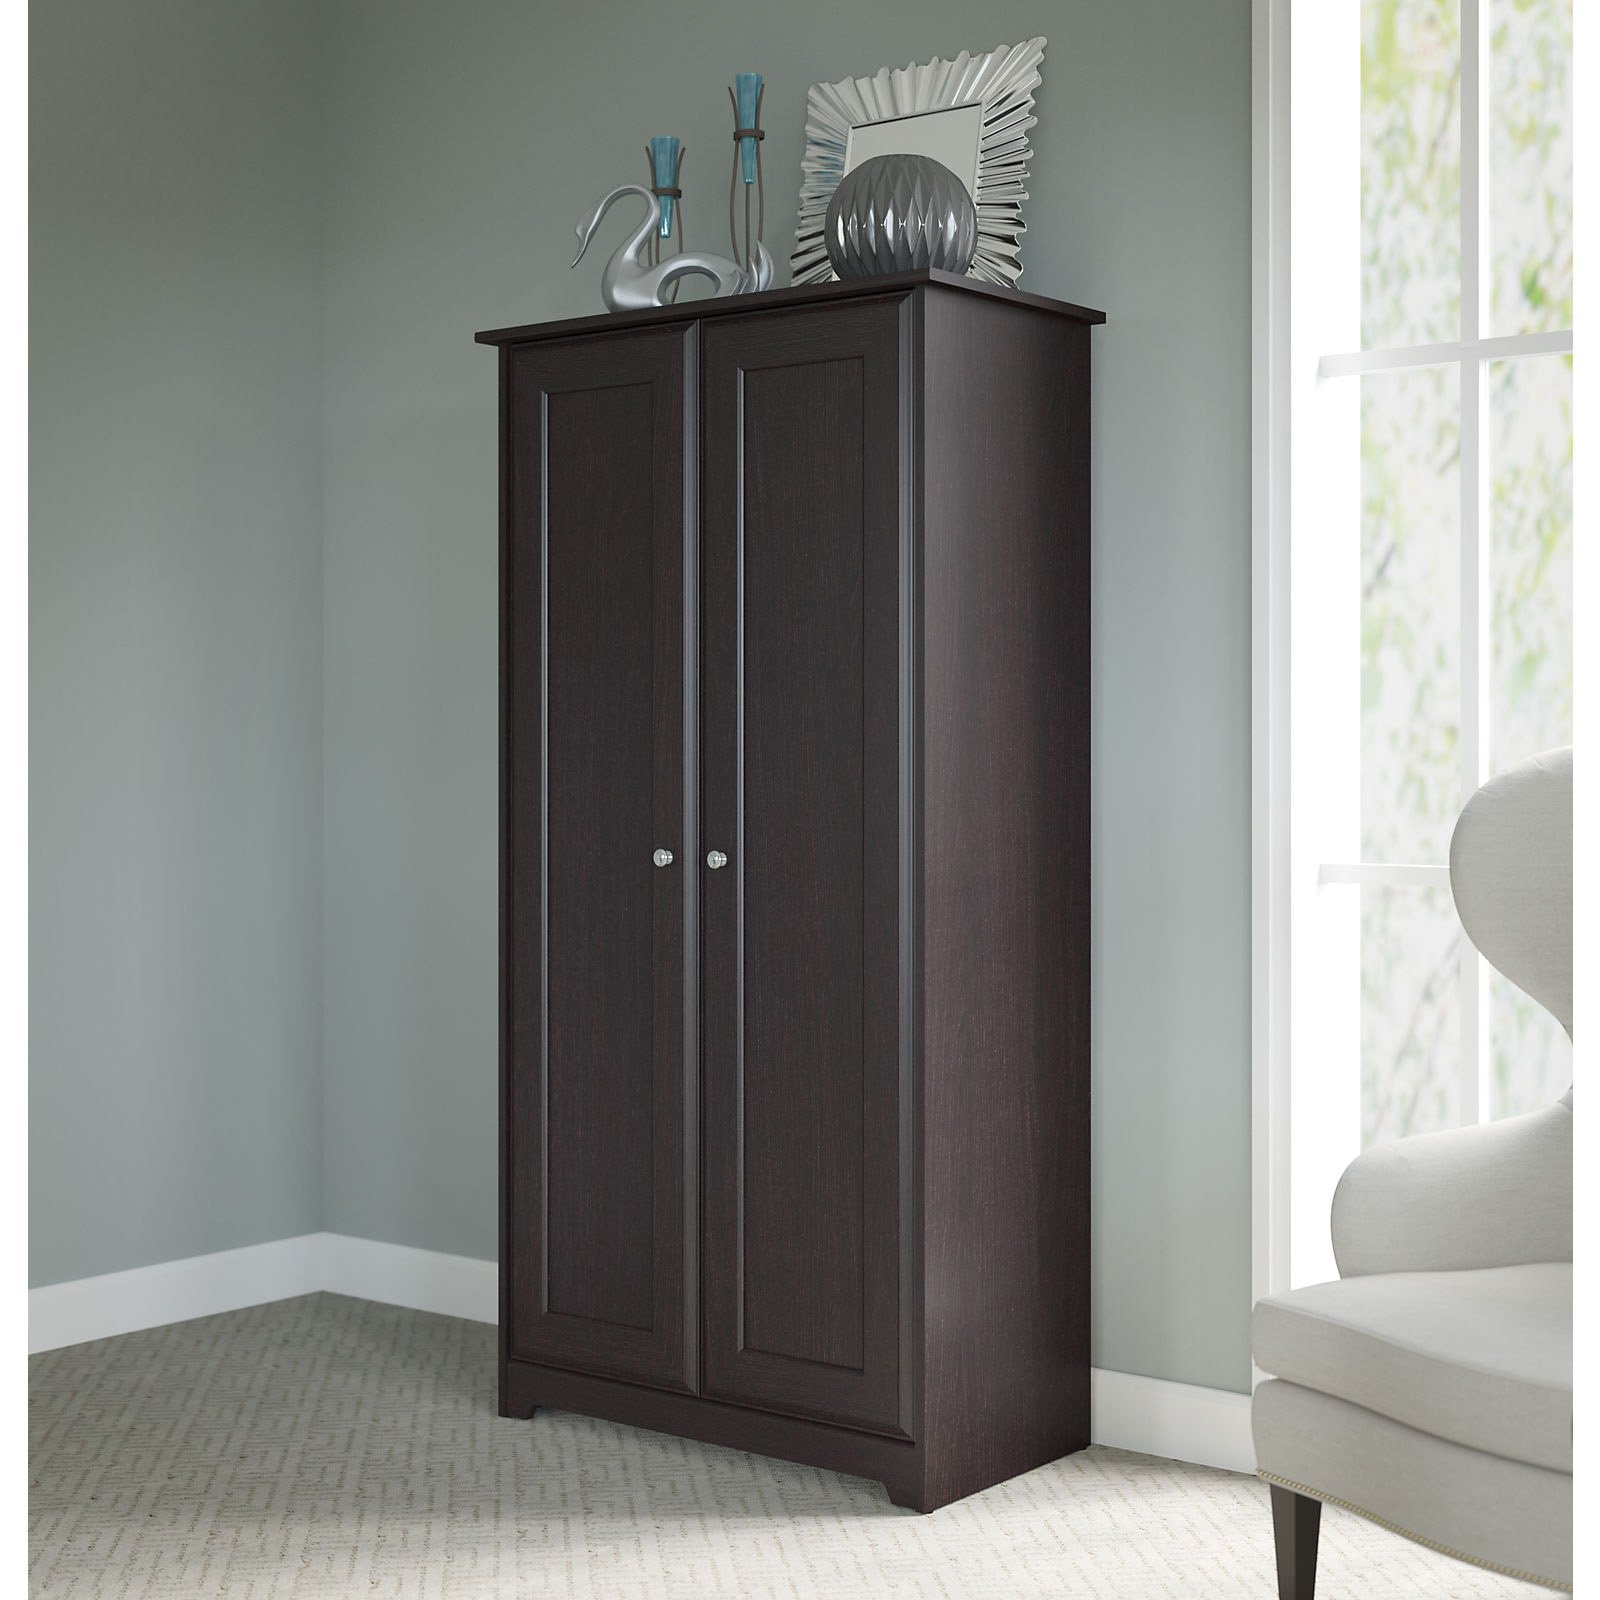 Contemporary Cabinet With Shelves And Doors Set